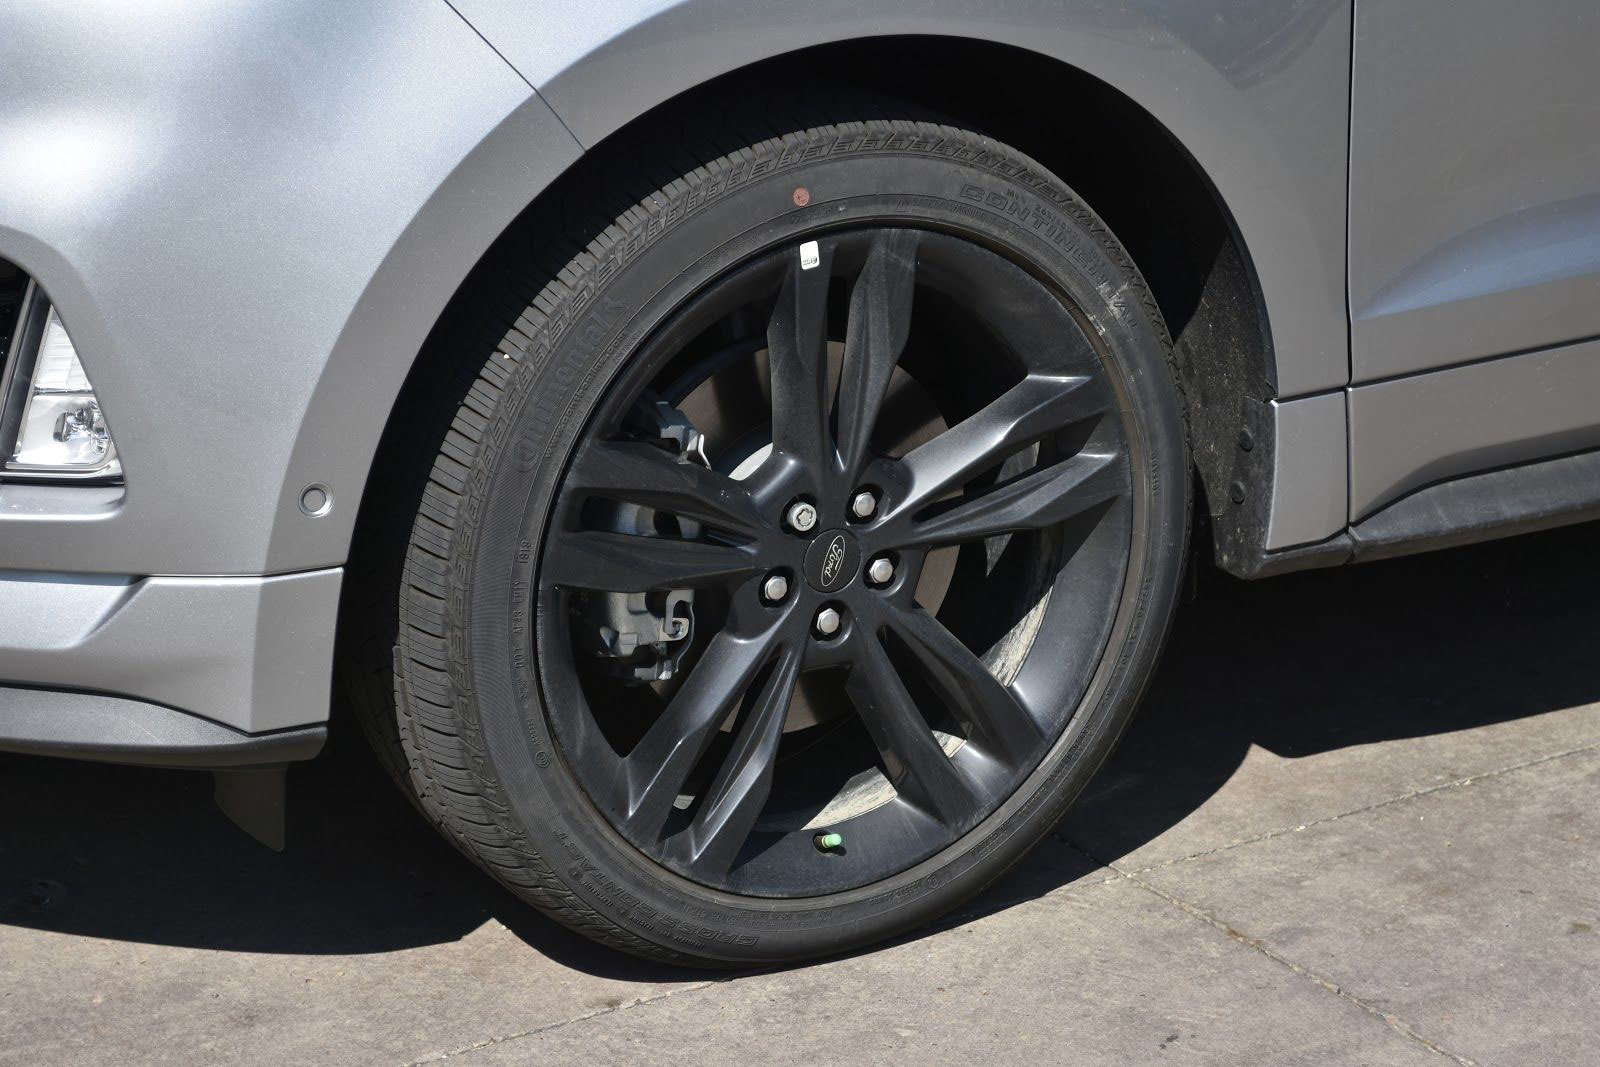 2020 Ford Edge ST Tire